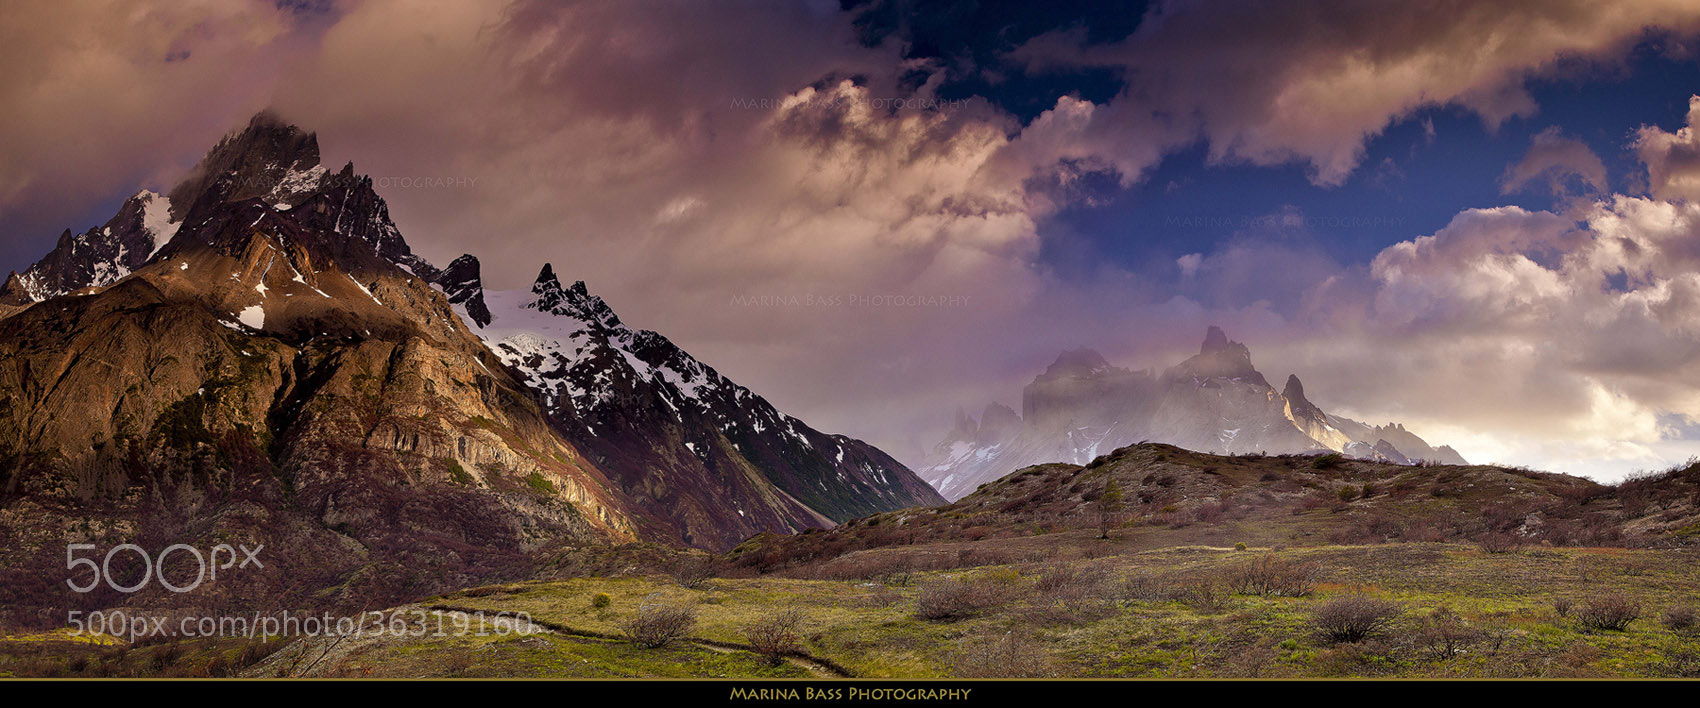 Photograph Torres Del Paine by Marina Bass on 500px